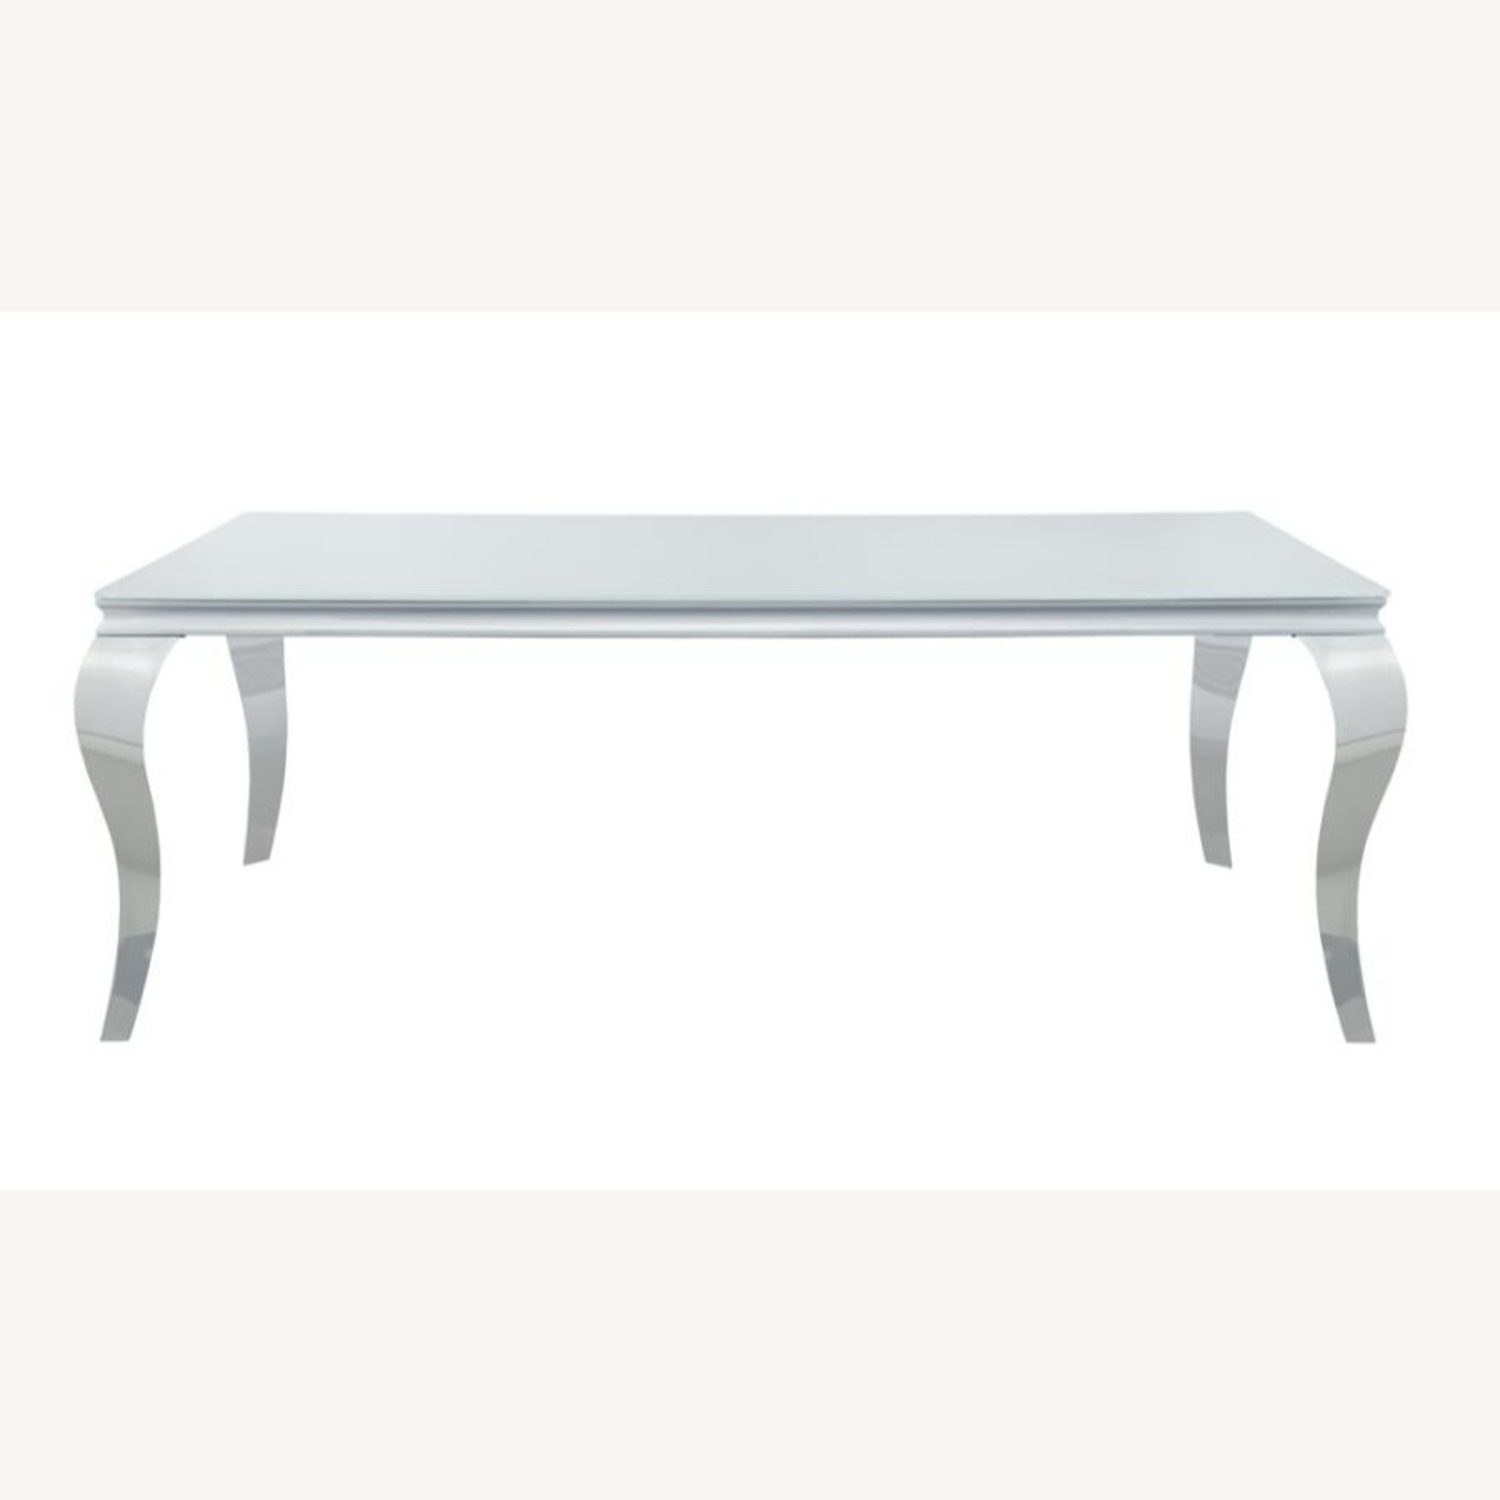 Dining Table In Chrome Base Finish W/ White Top - image-1